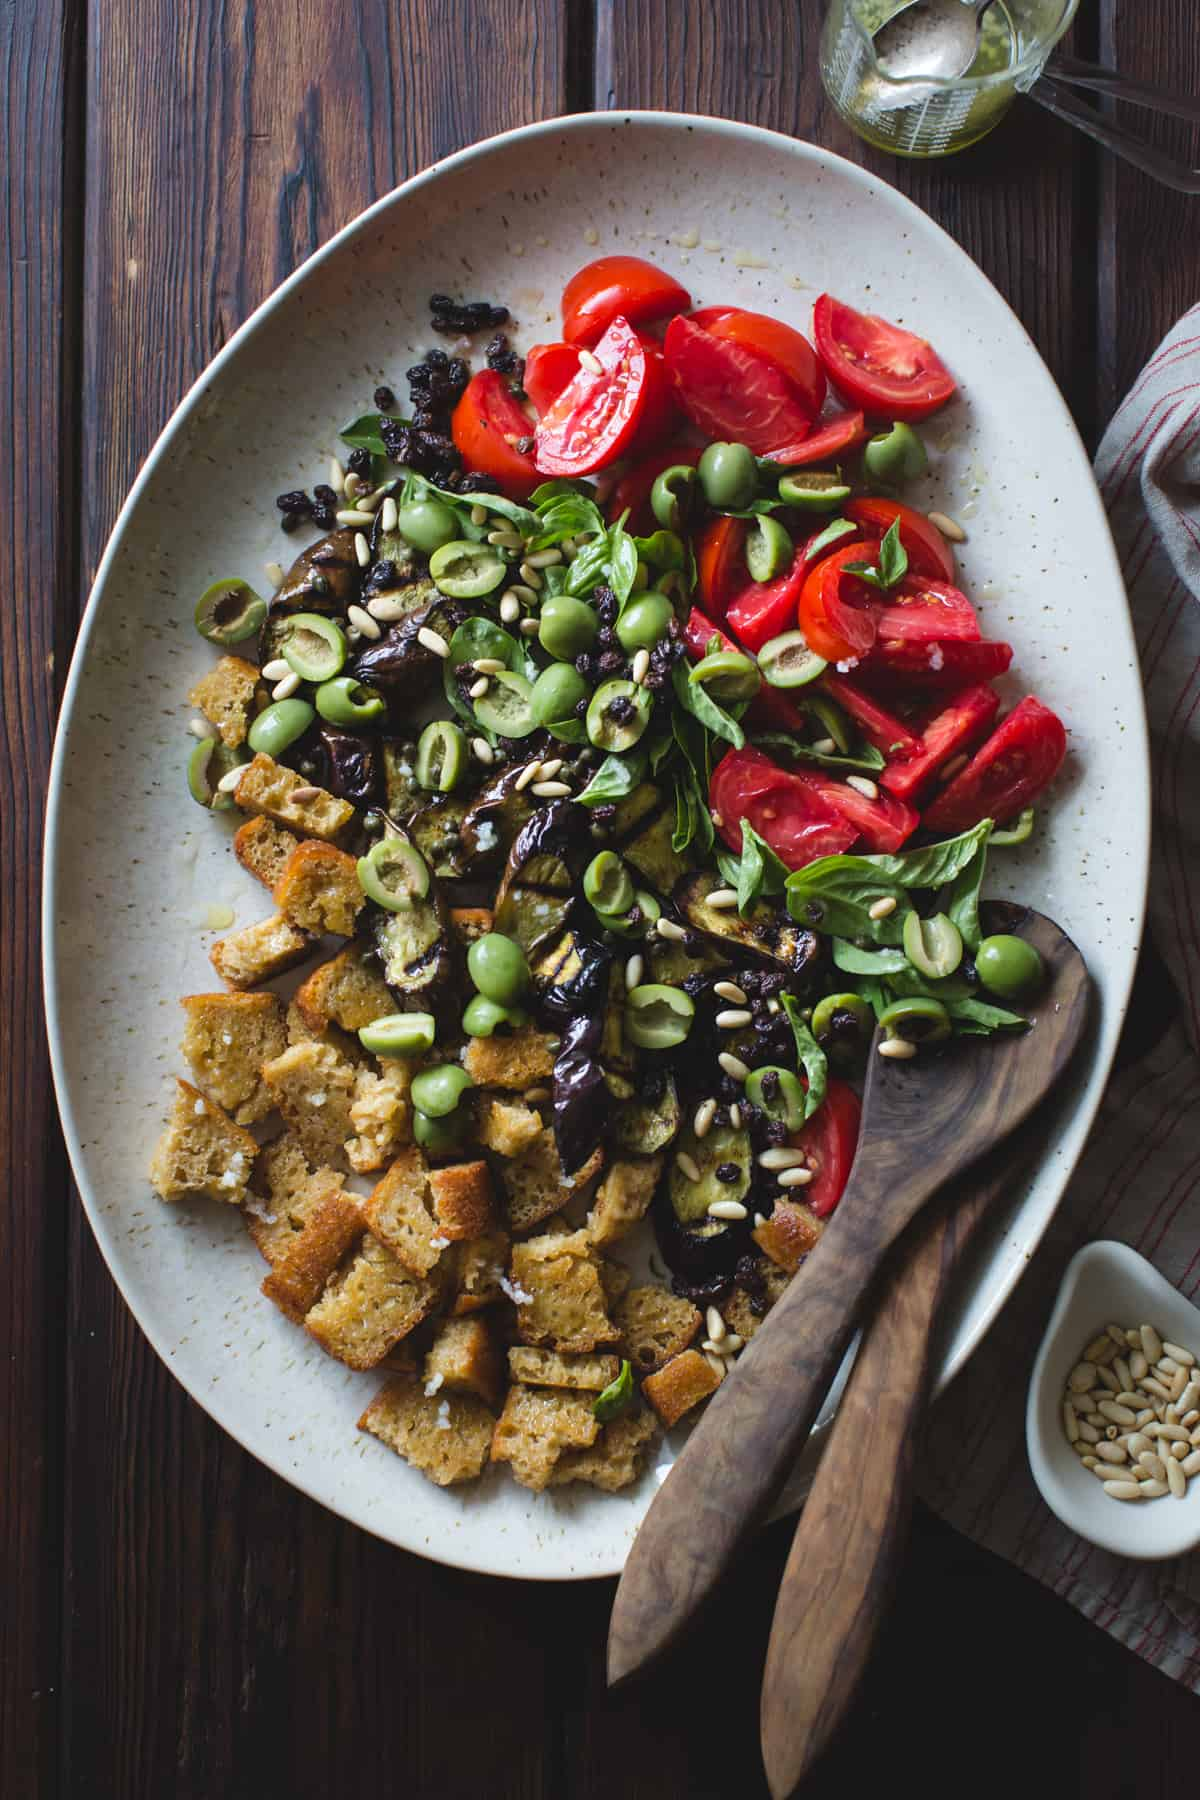 Roasted Eggplant Panzanella with Capers, Olives, and Pine Nuts {gluten-free, vegan option}